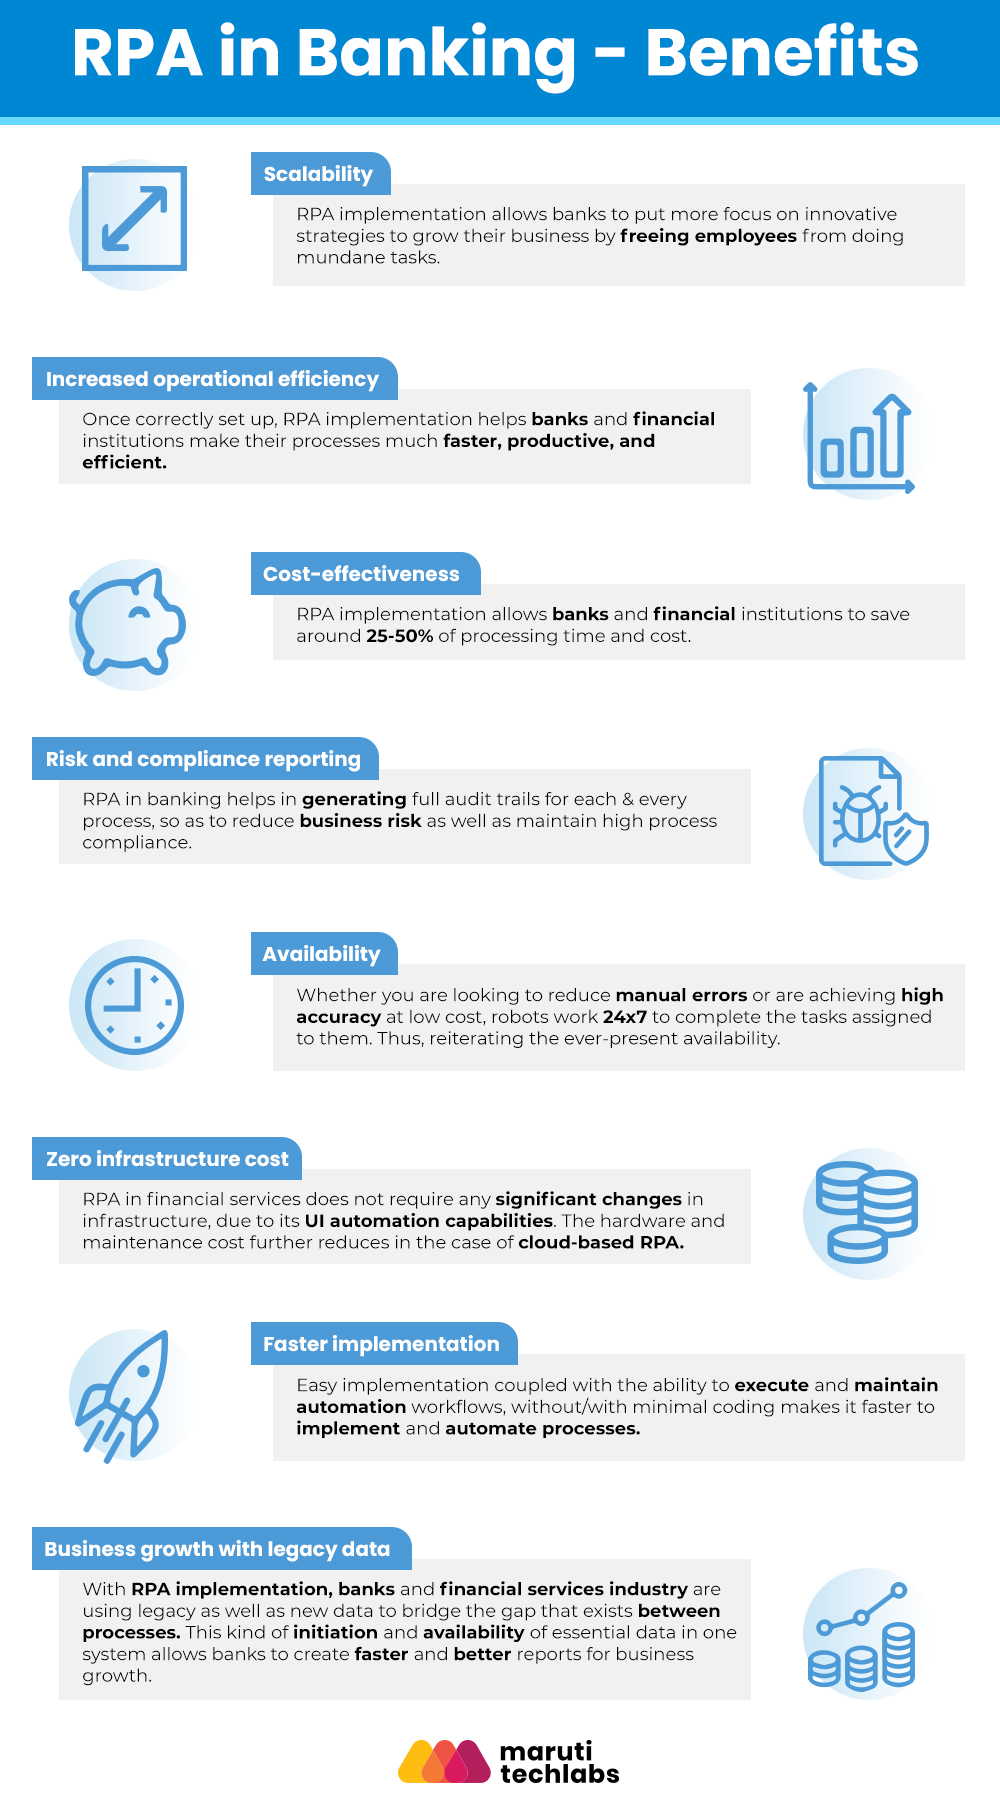 Info-graphic of benefits by RPA in Banking & Finance by Maruti Techlabs